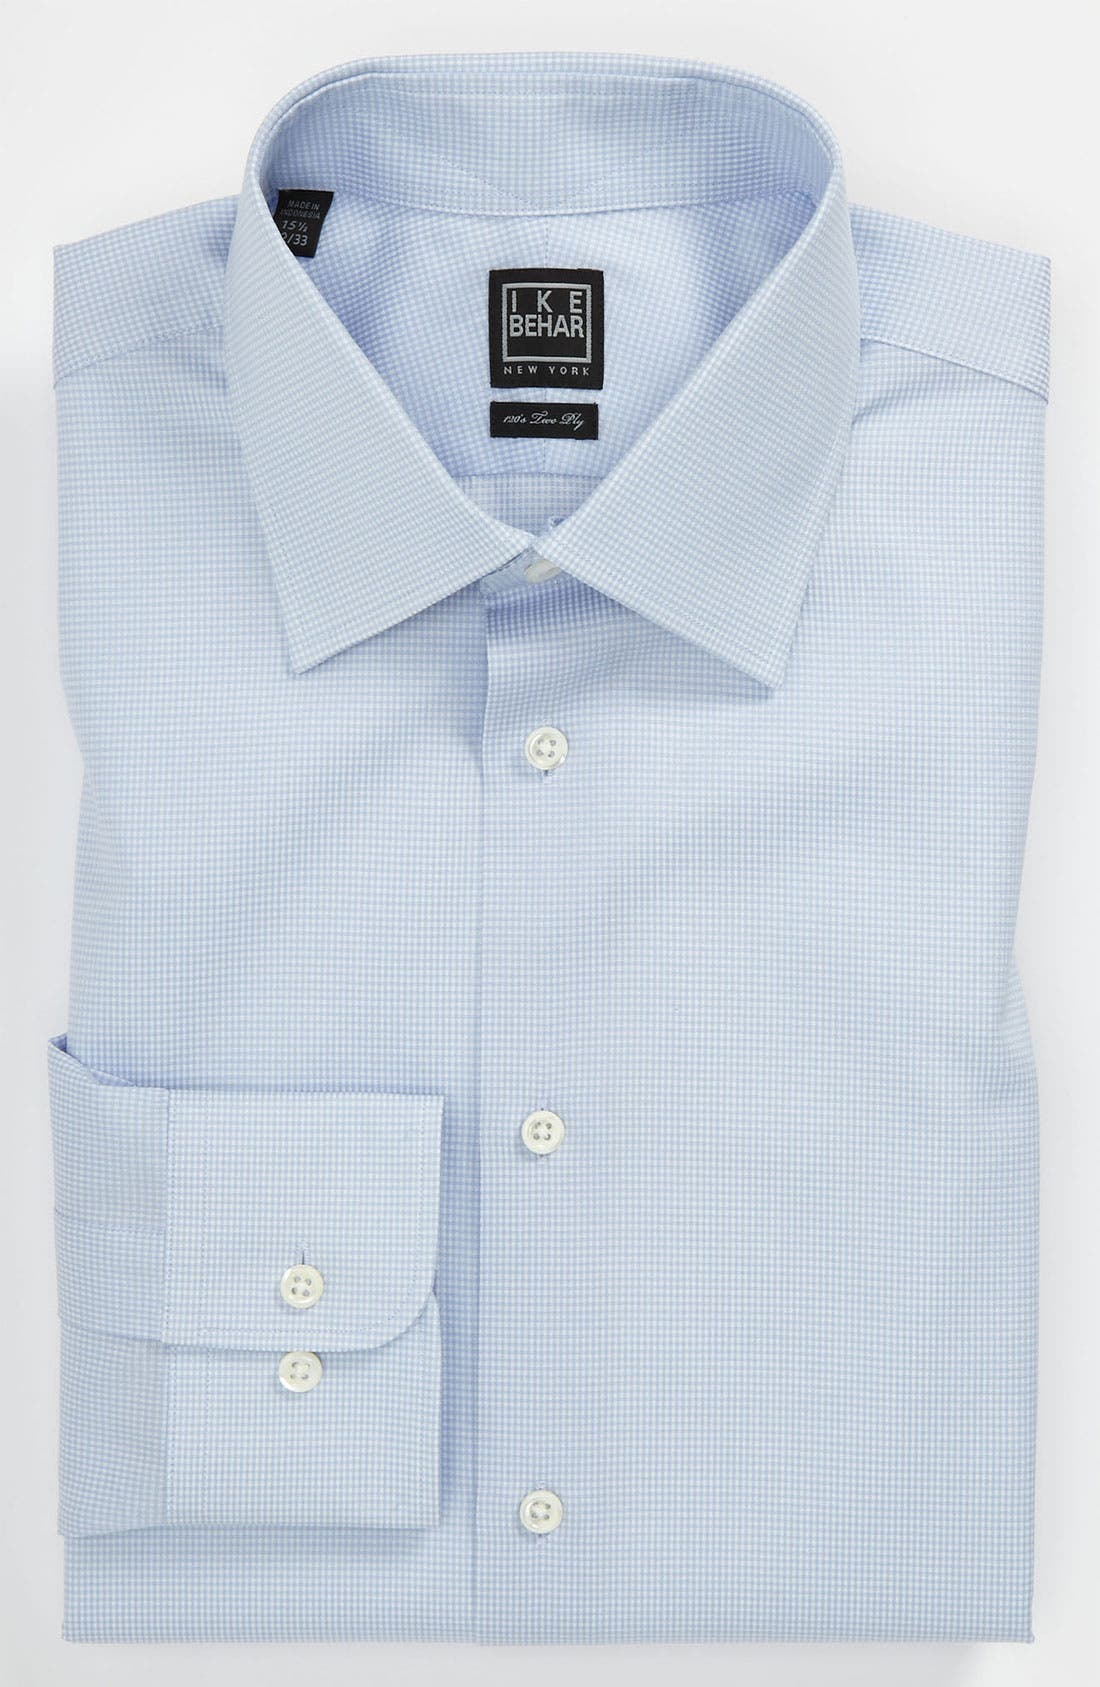 Alternate Image 1 Selected - Ike Behar Regular Fit Tonal Texture Dress Shirt (Online Only)